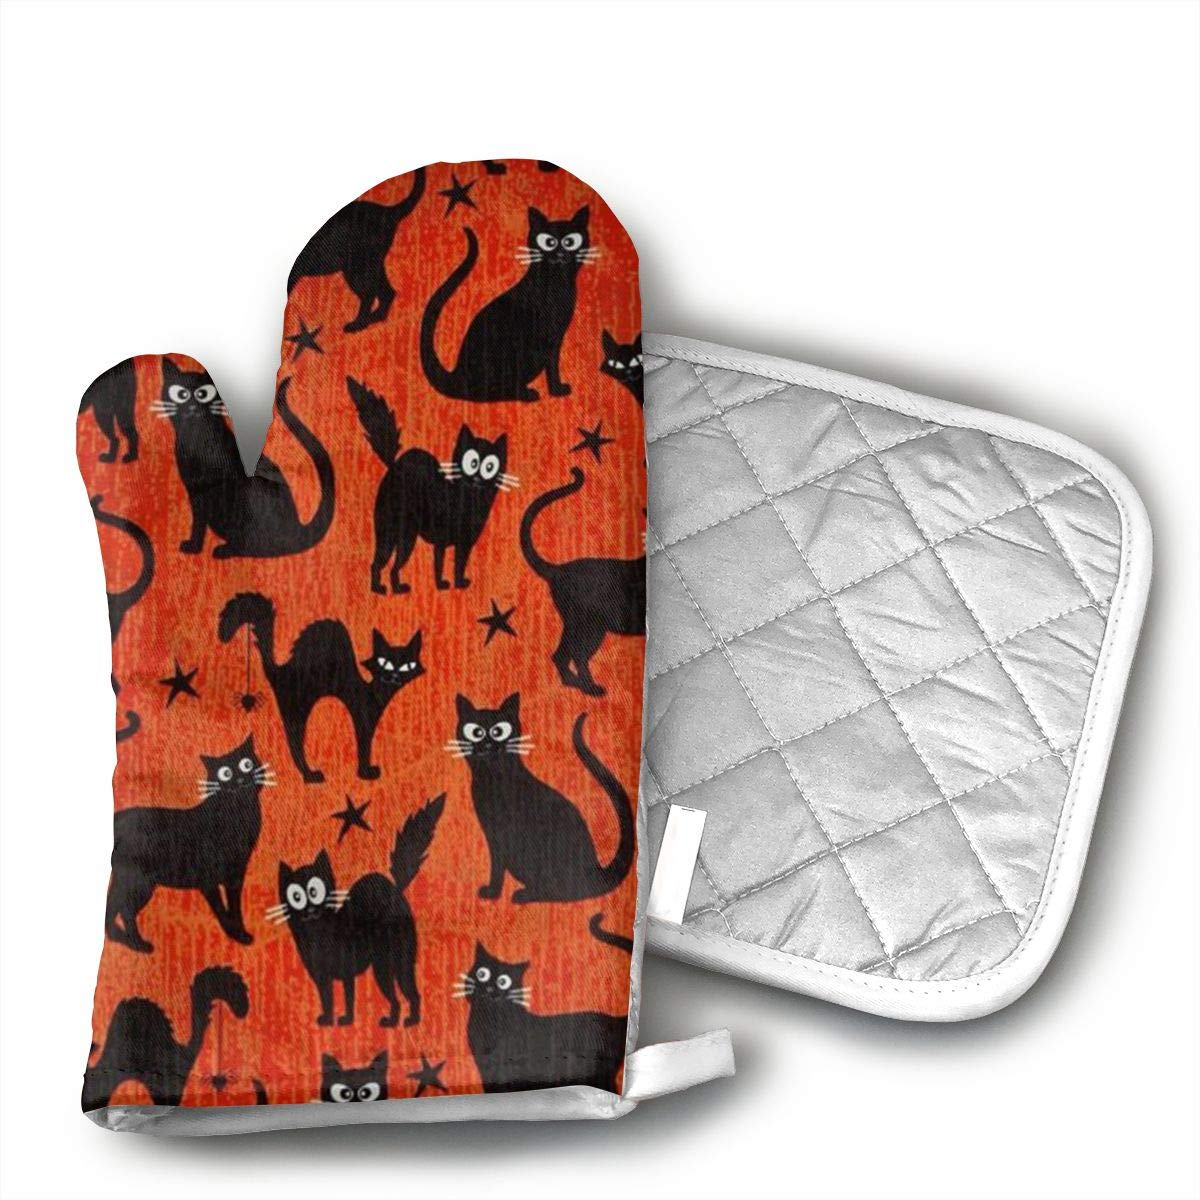 VFSFJKBG Fangtastic Glow in The Dark Black Cats Orange Oven Gloves, High Heat Resistance, Machine Washable High Heat Resistant Polyester Filling for Thanks Giving, Christmas